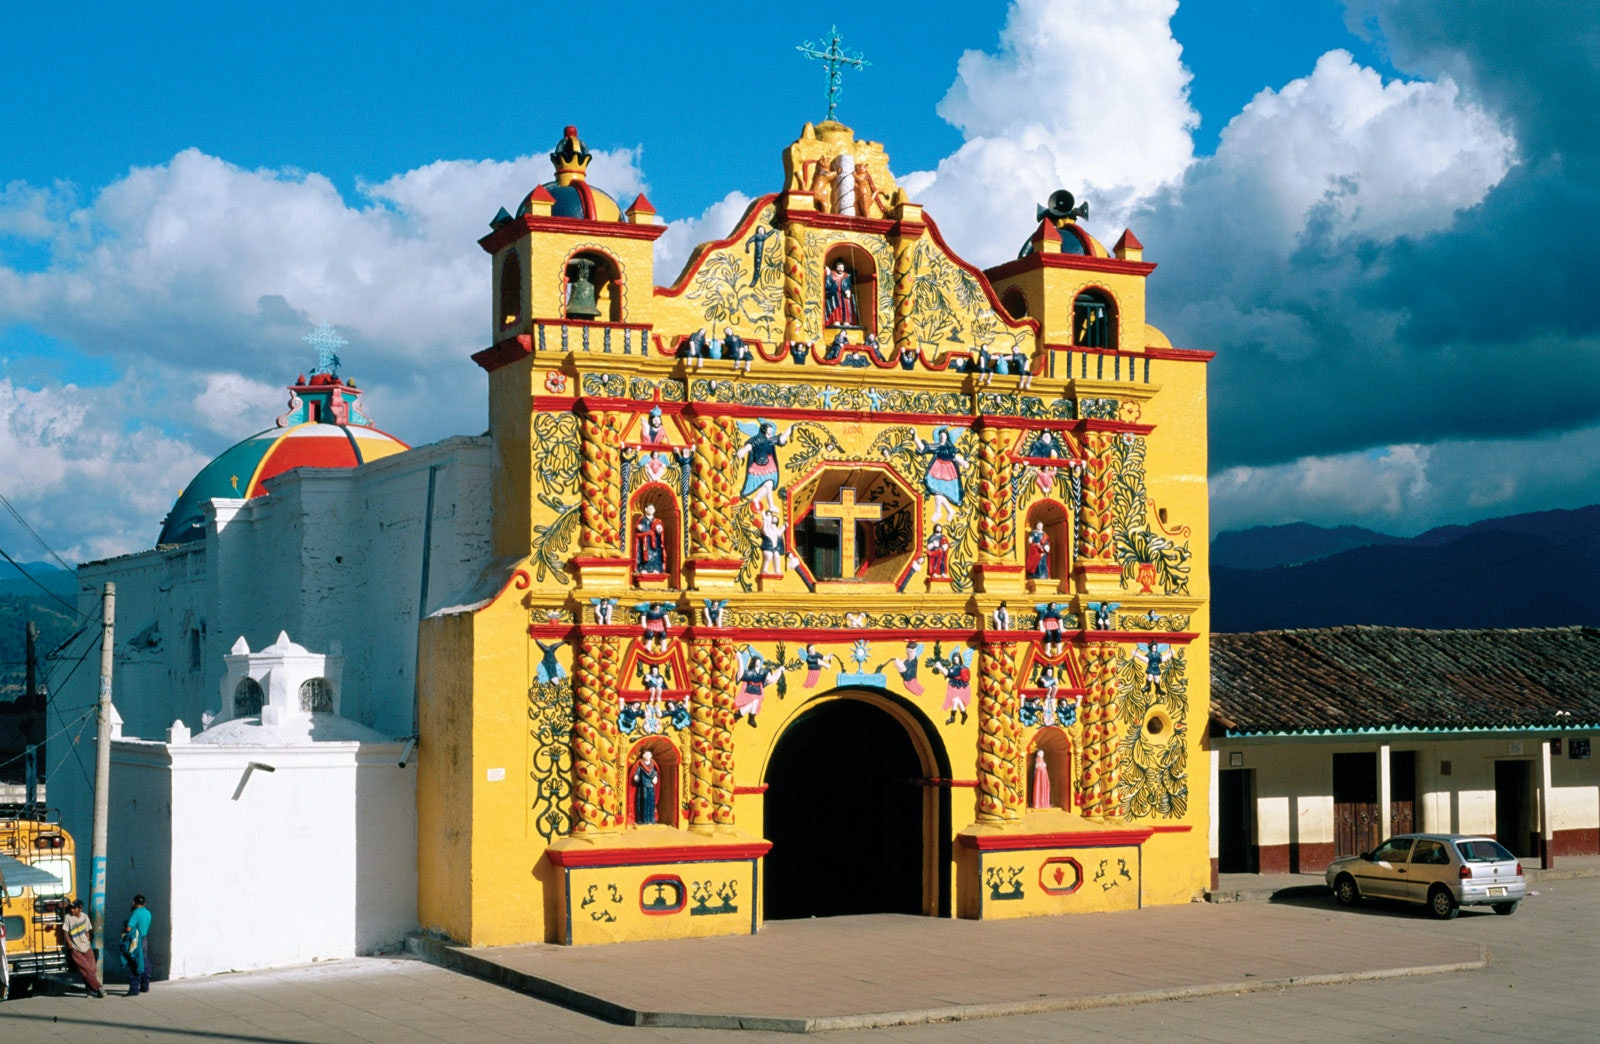 The La Iglesia de San Andres de Xecul church, about an hour's drive from Gabriel's home town of Totonicapán.